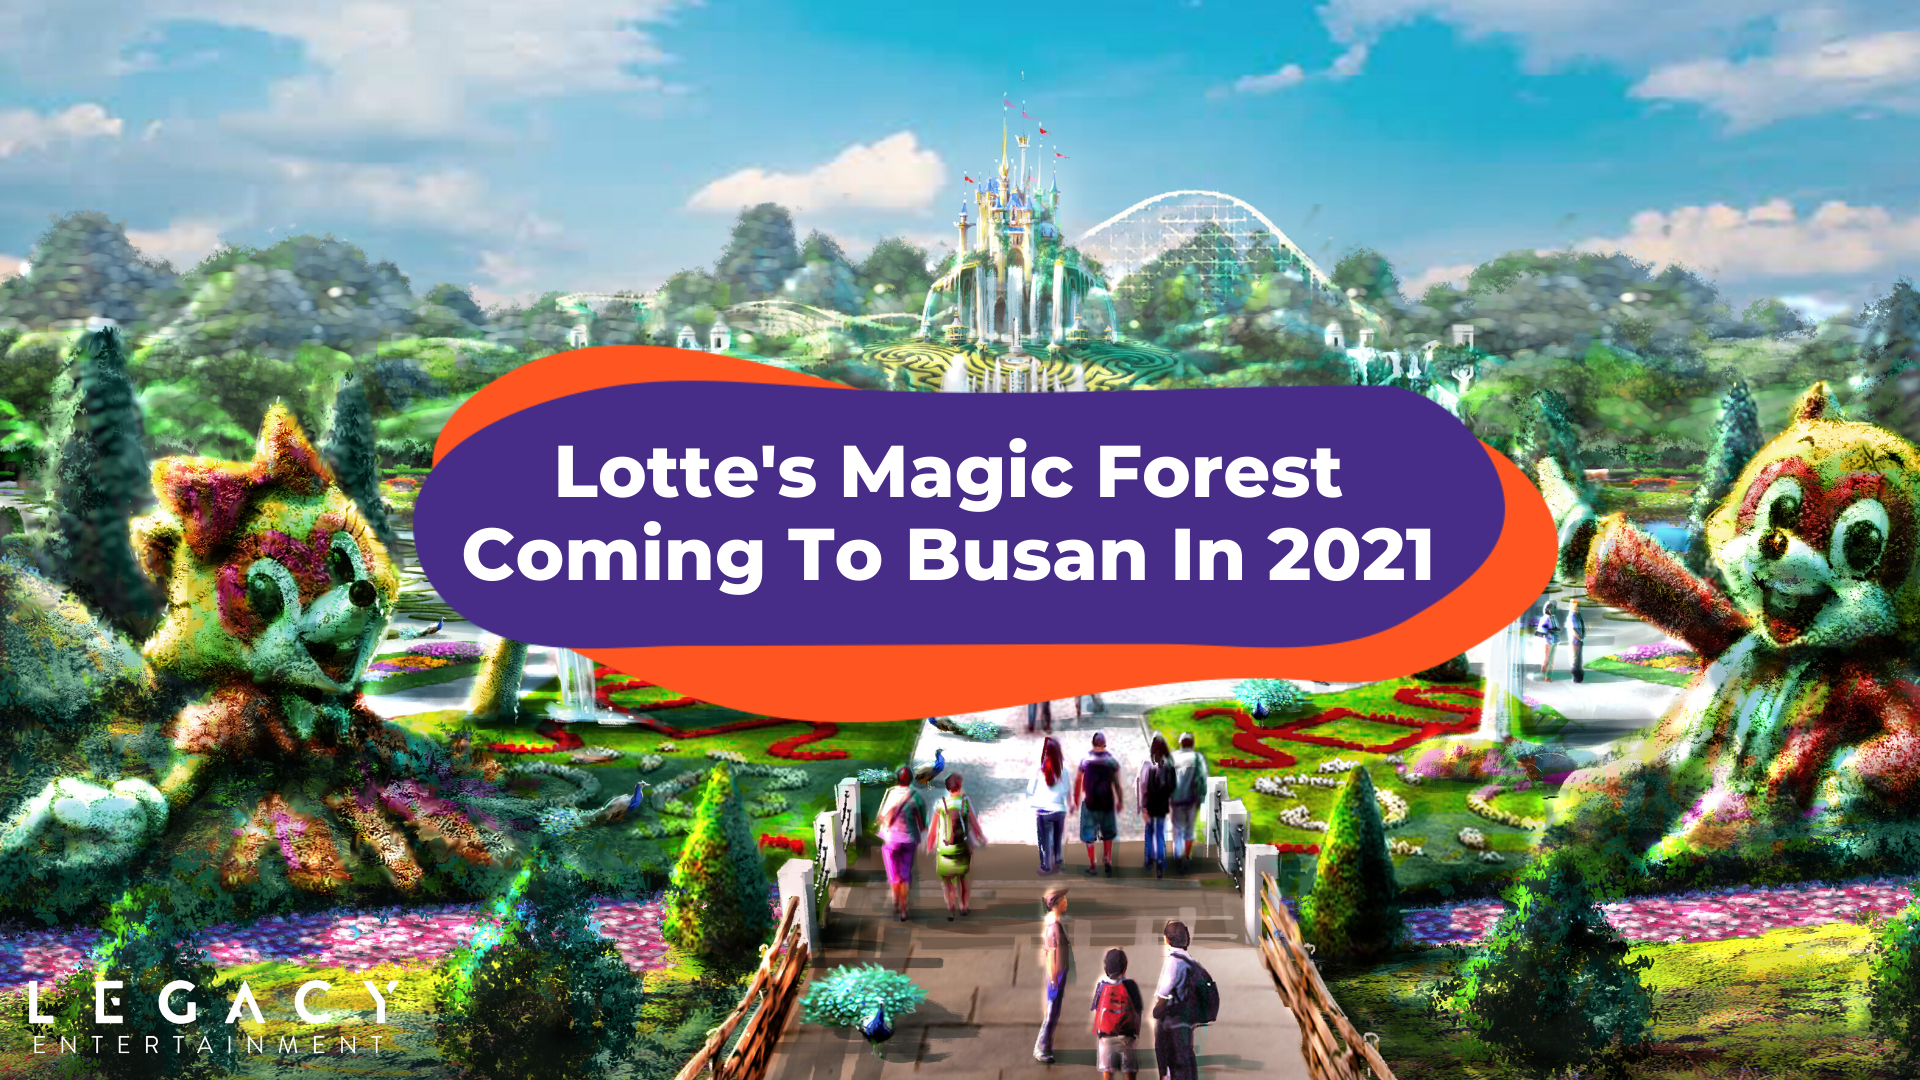 Lotte's Magic Forest In Busan, South Korea Is Scheduled To Open This 2021!